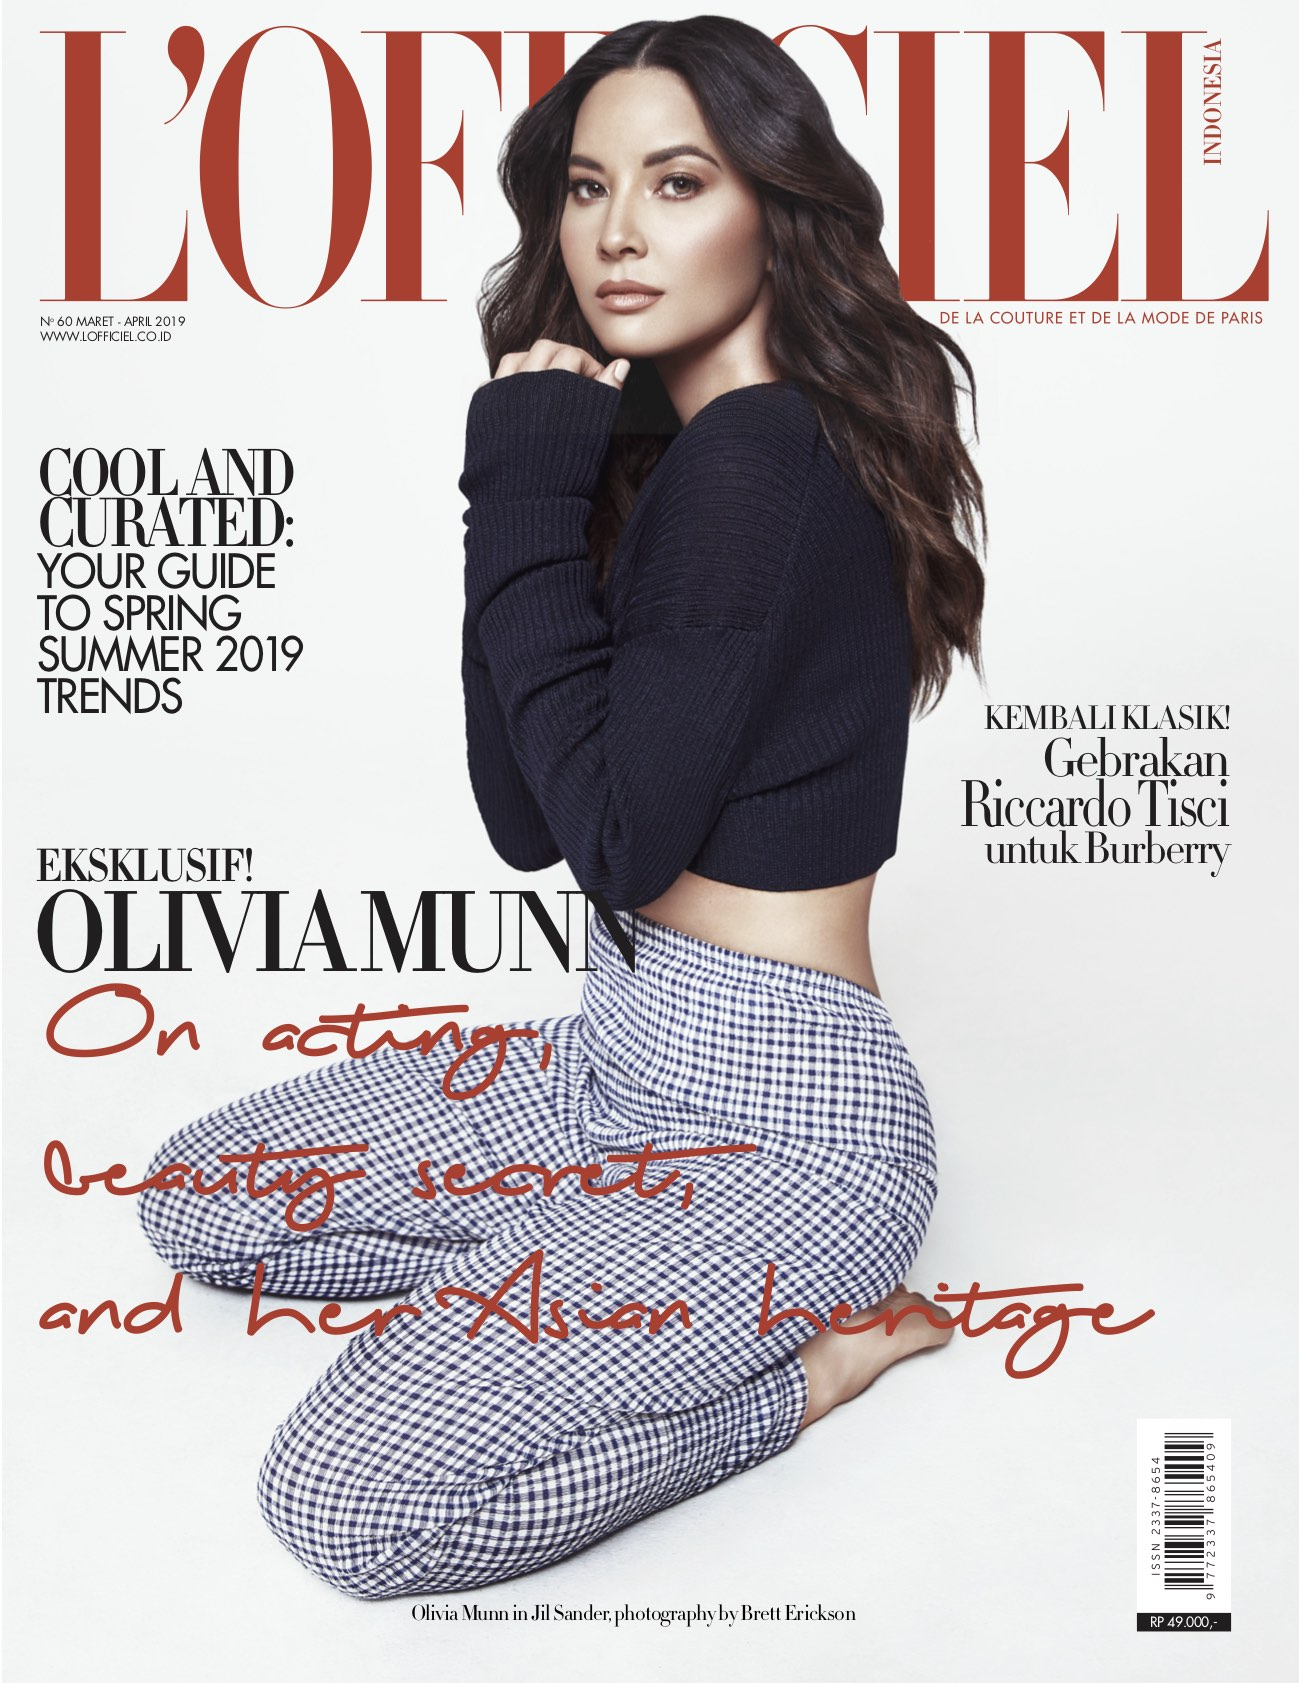 COVER L'OFFICIEL 60.jpg